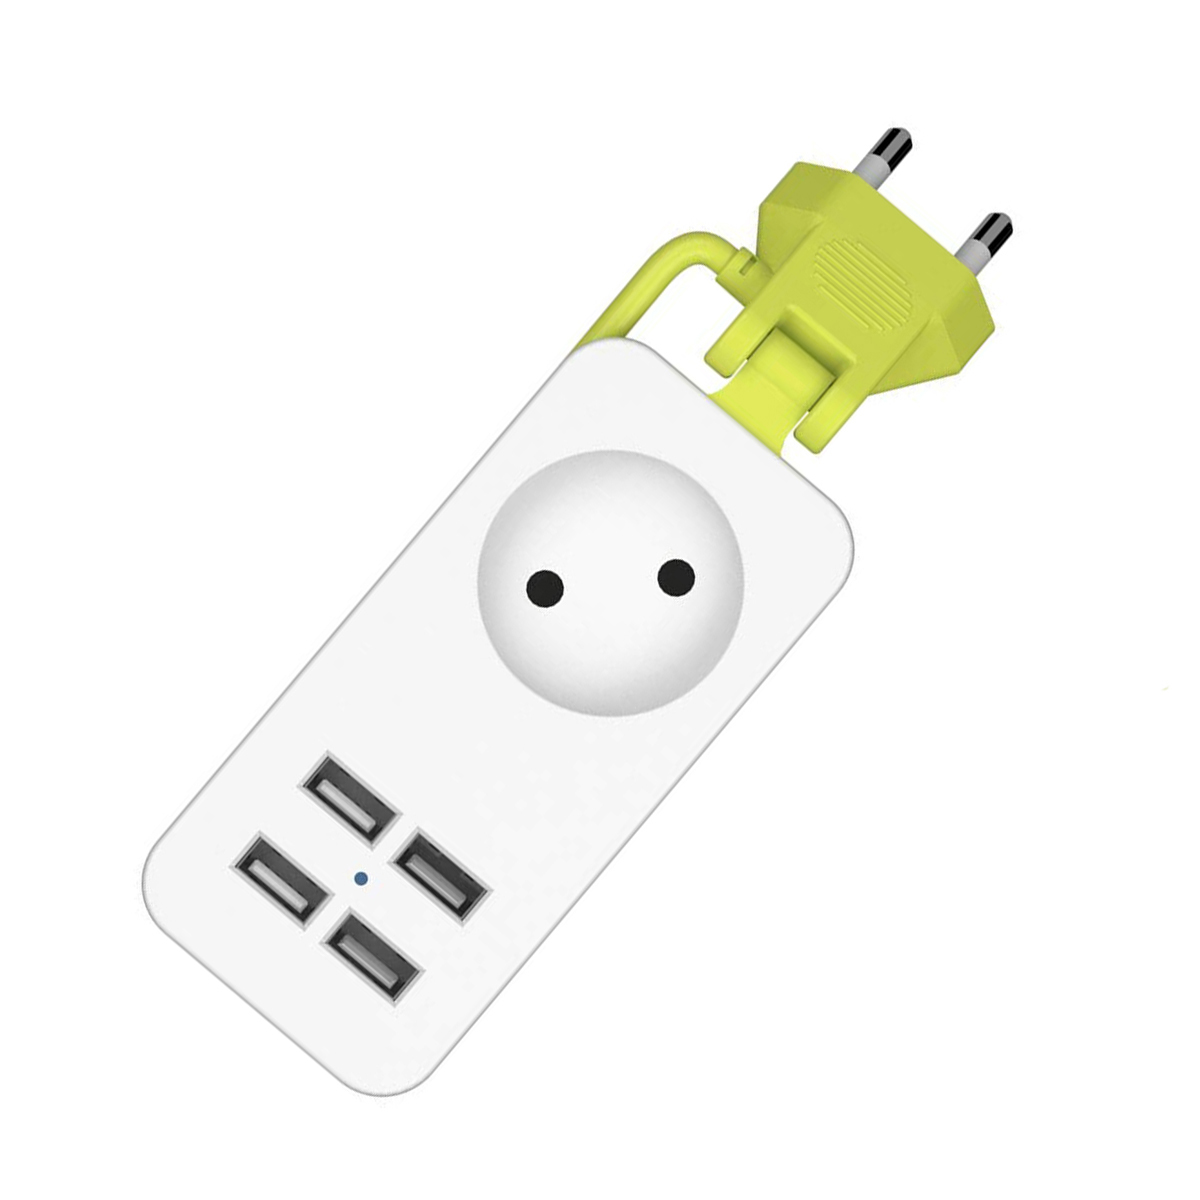 SOONHUA Power Strip 4 USB Extension Socket AC Power Adapter Portable Power Strips 1200W With 1.5m Cable EU Plug